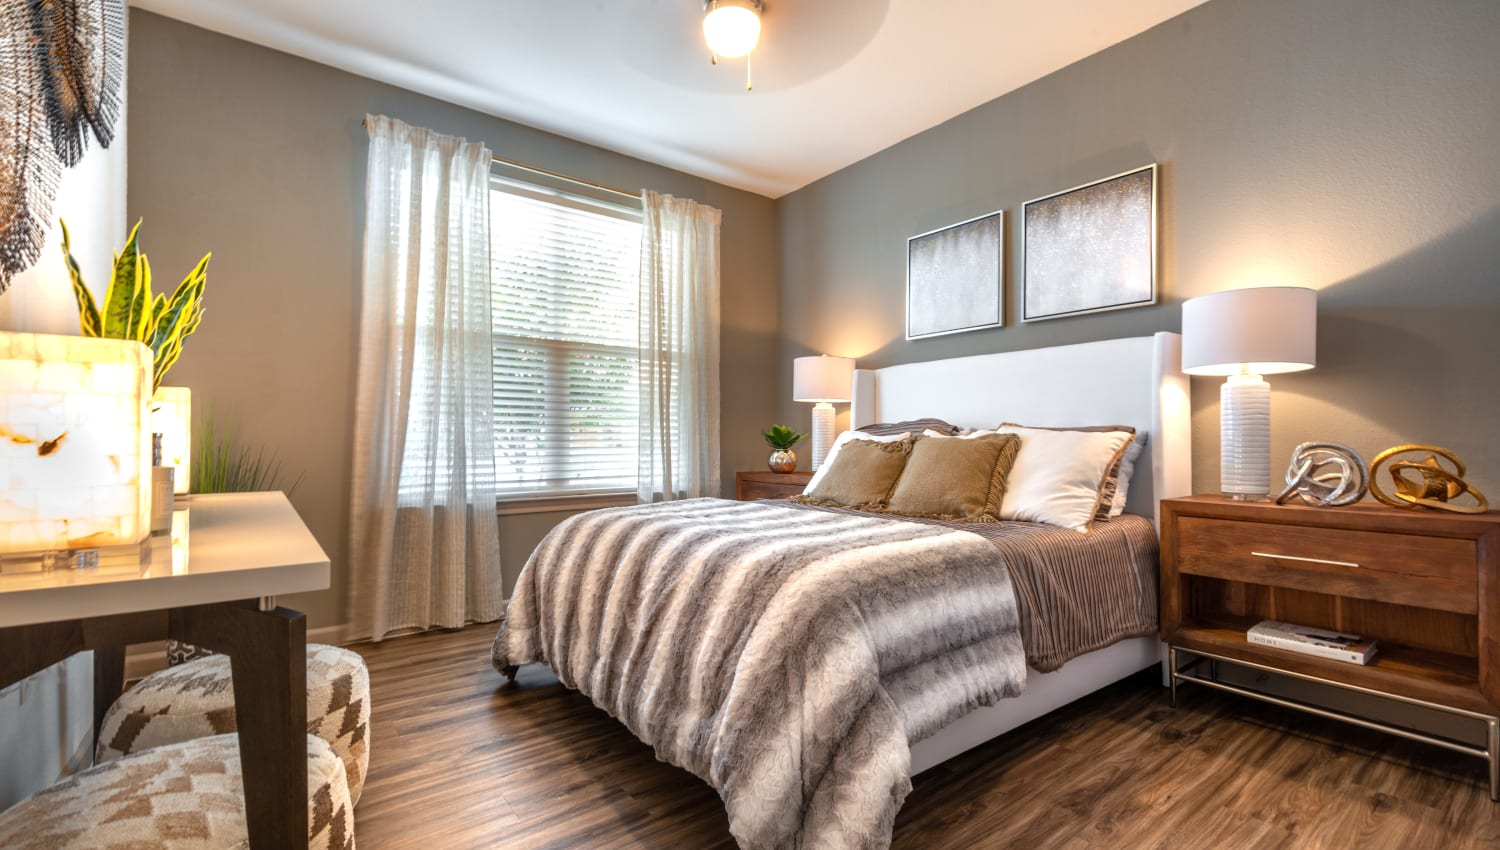 Beautiful bedroom at Olympus Katy Ranch in Katy, Texas